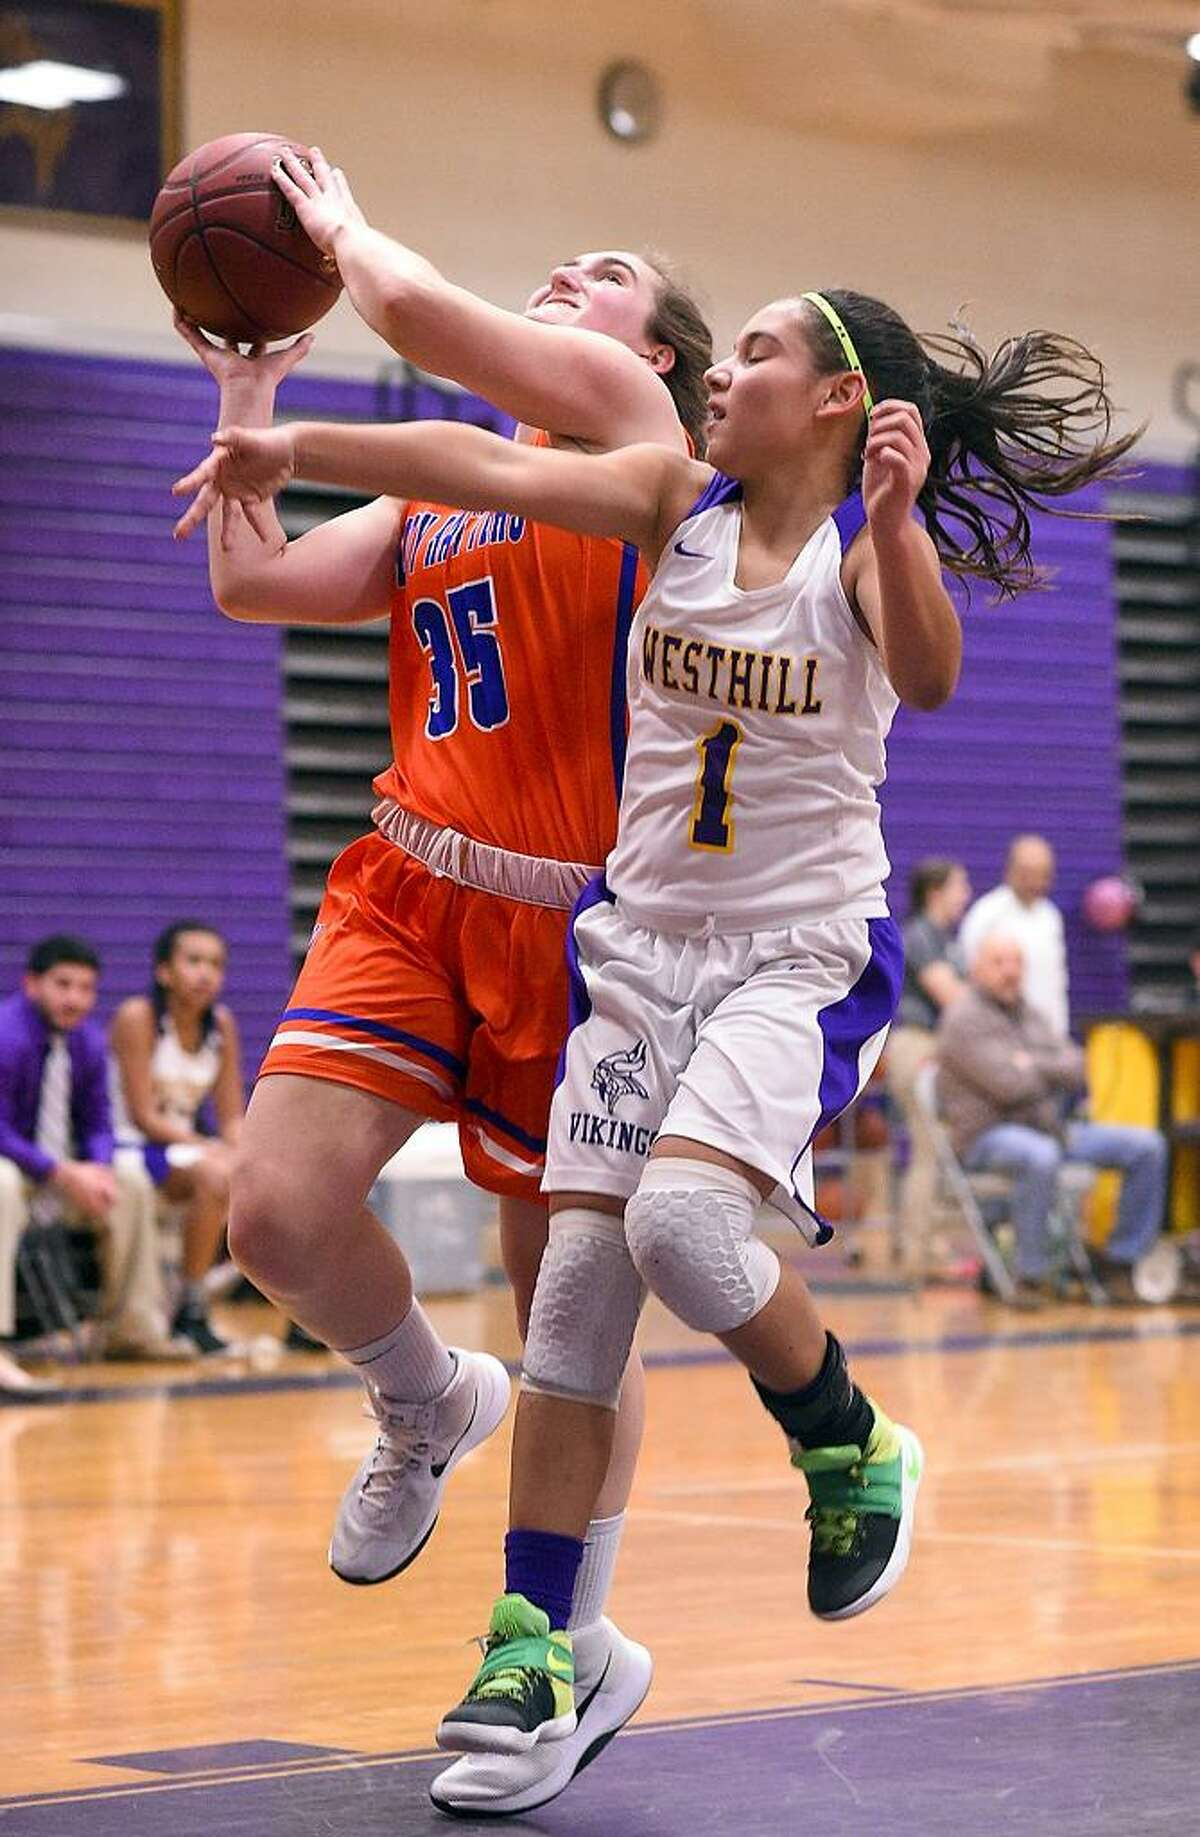 Danbury's Emily Grenier (35) is fouled on her shot by Westhill's Maddy Bautista (1)during a FCIAC girls basketball game at Westhill High School in Stamford, Conn. on Thursday, Jan. 11, 2018.